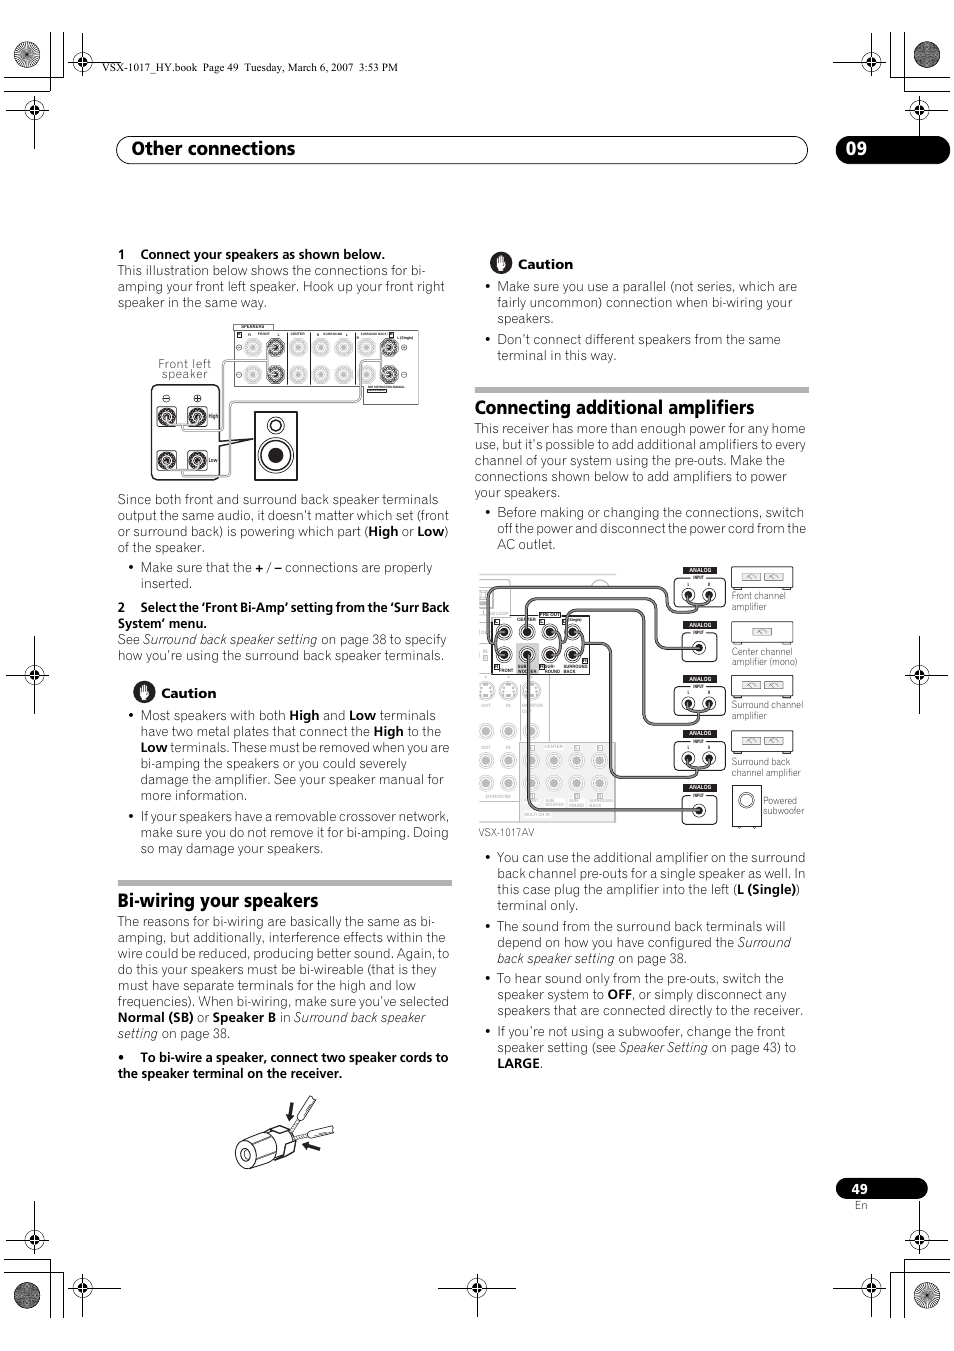 Other Connections 09 Bi Wiring Your Speakers Connecting Additional Home In Parallel Amplifiers Pioneer Vsx 1017av K User Manual Page 49 72